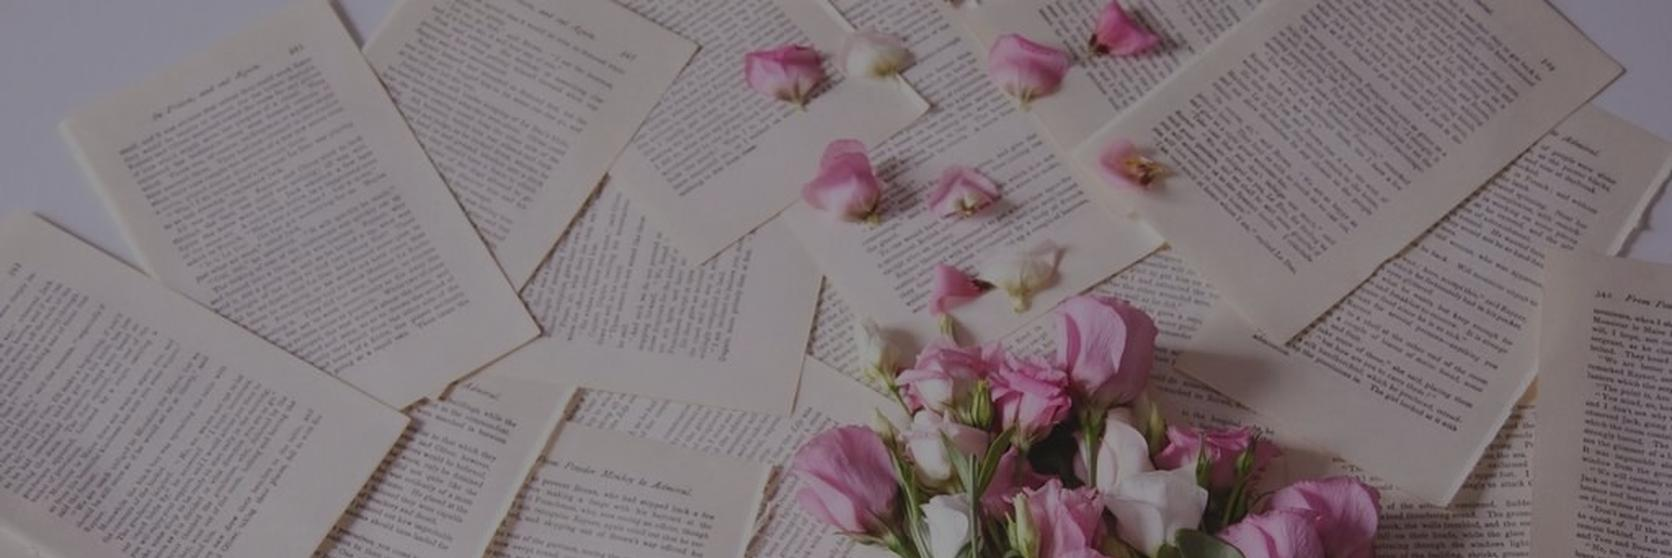 How-to-write-a-love-poem-1